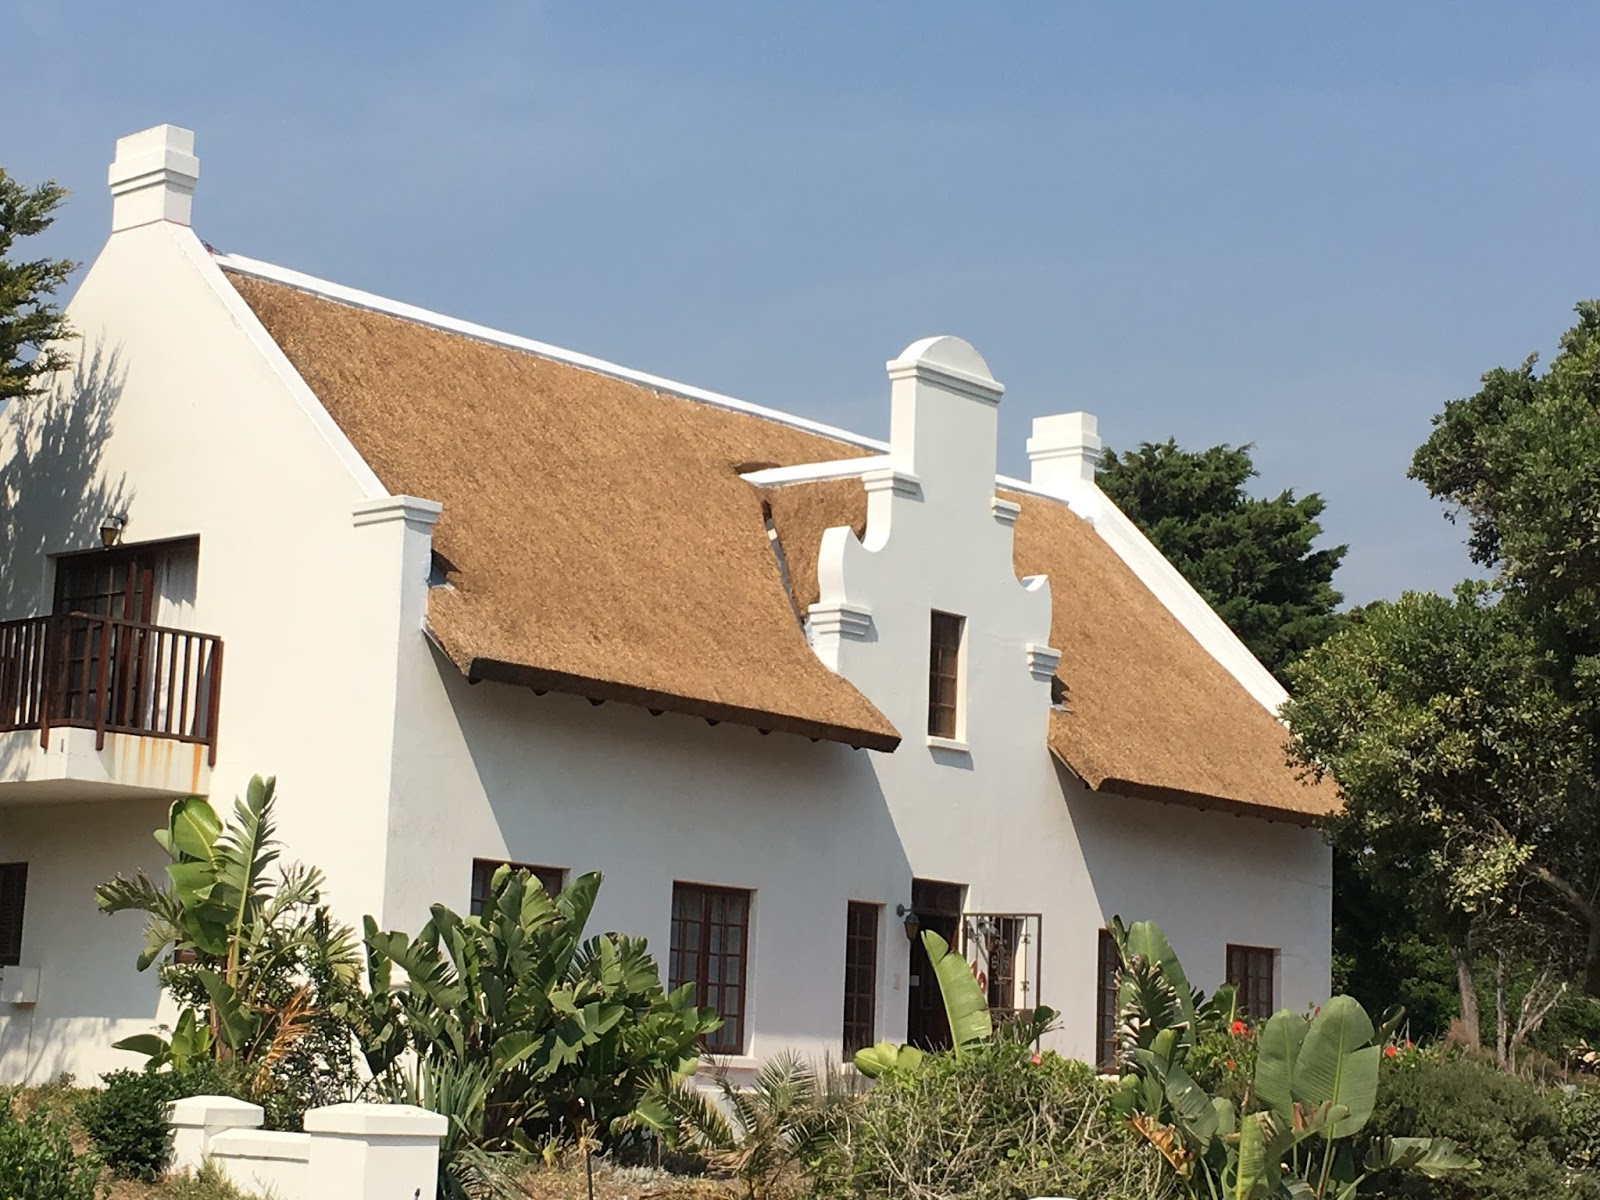 New Thatched Roof In Cape St Francis